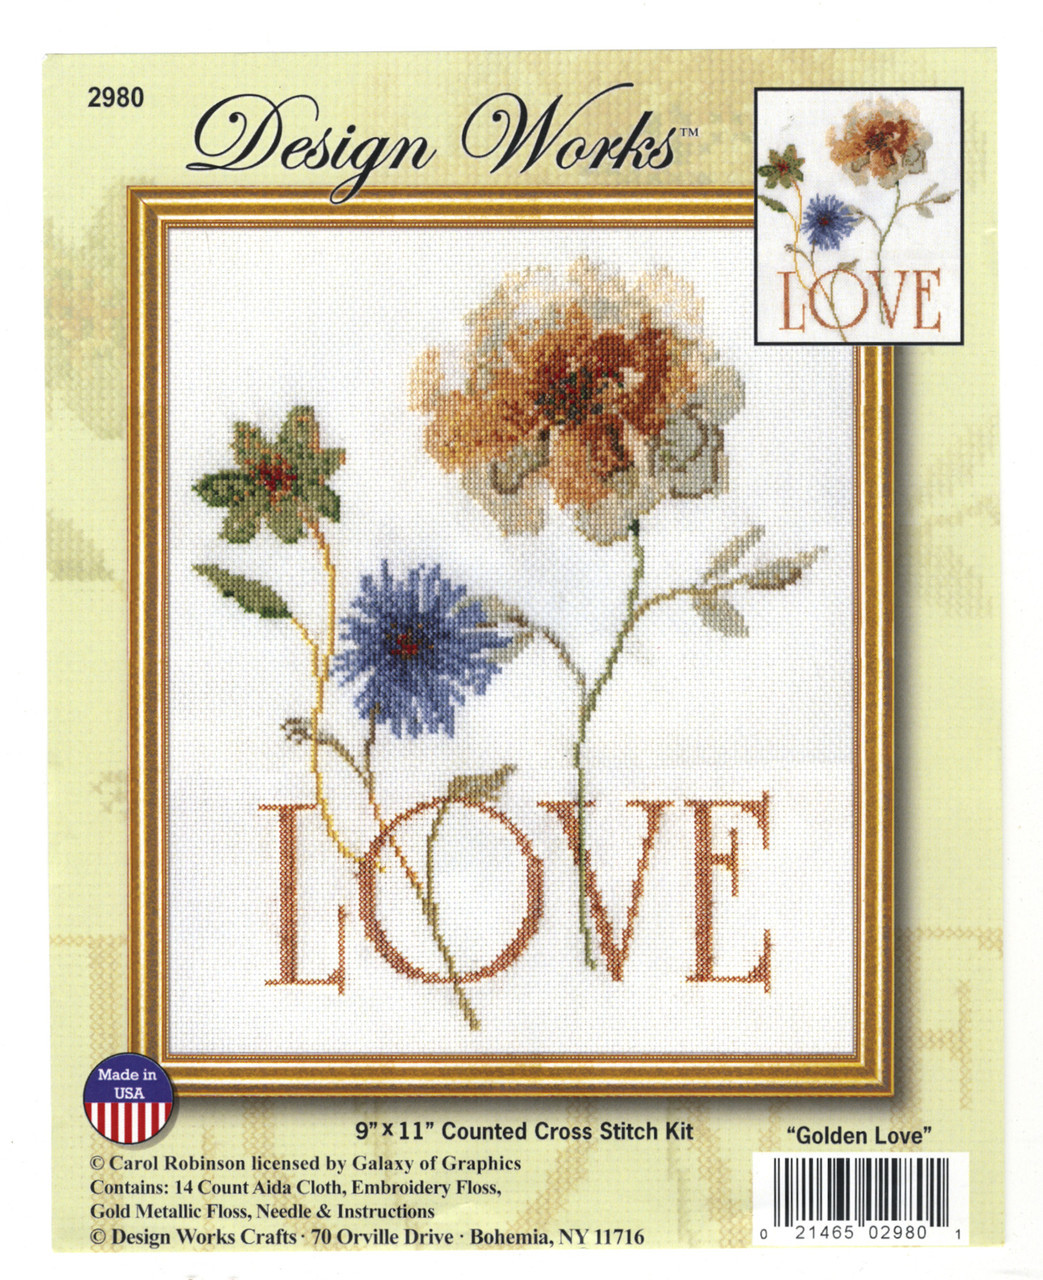 Design Works - Golden Love